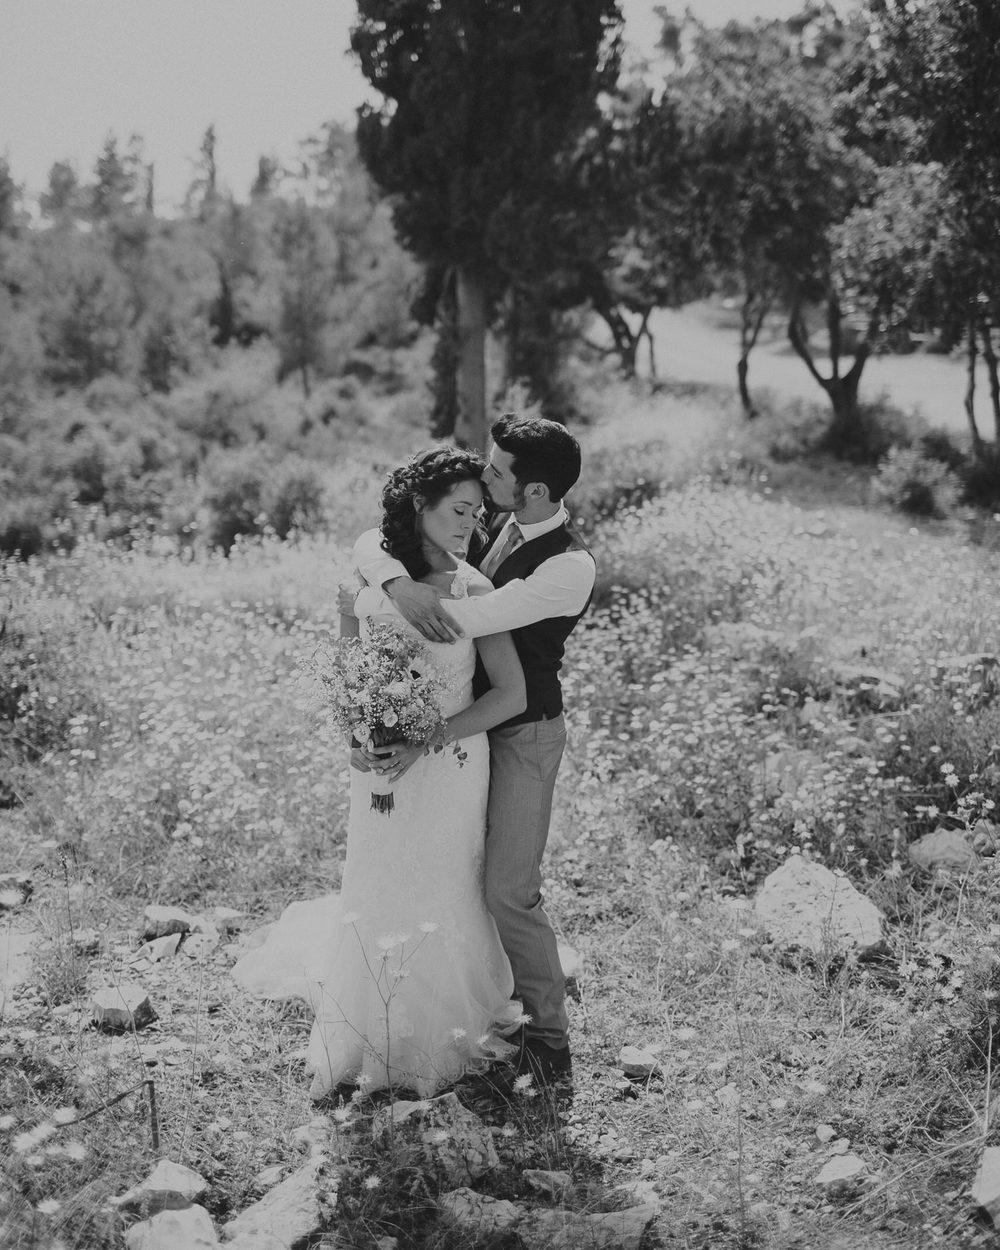 Countryside Wedding - Liron Erel - Echoes & Wildhearts 0041.jpg